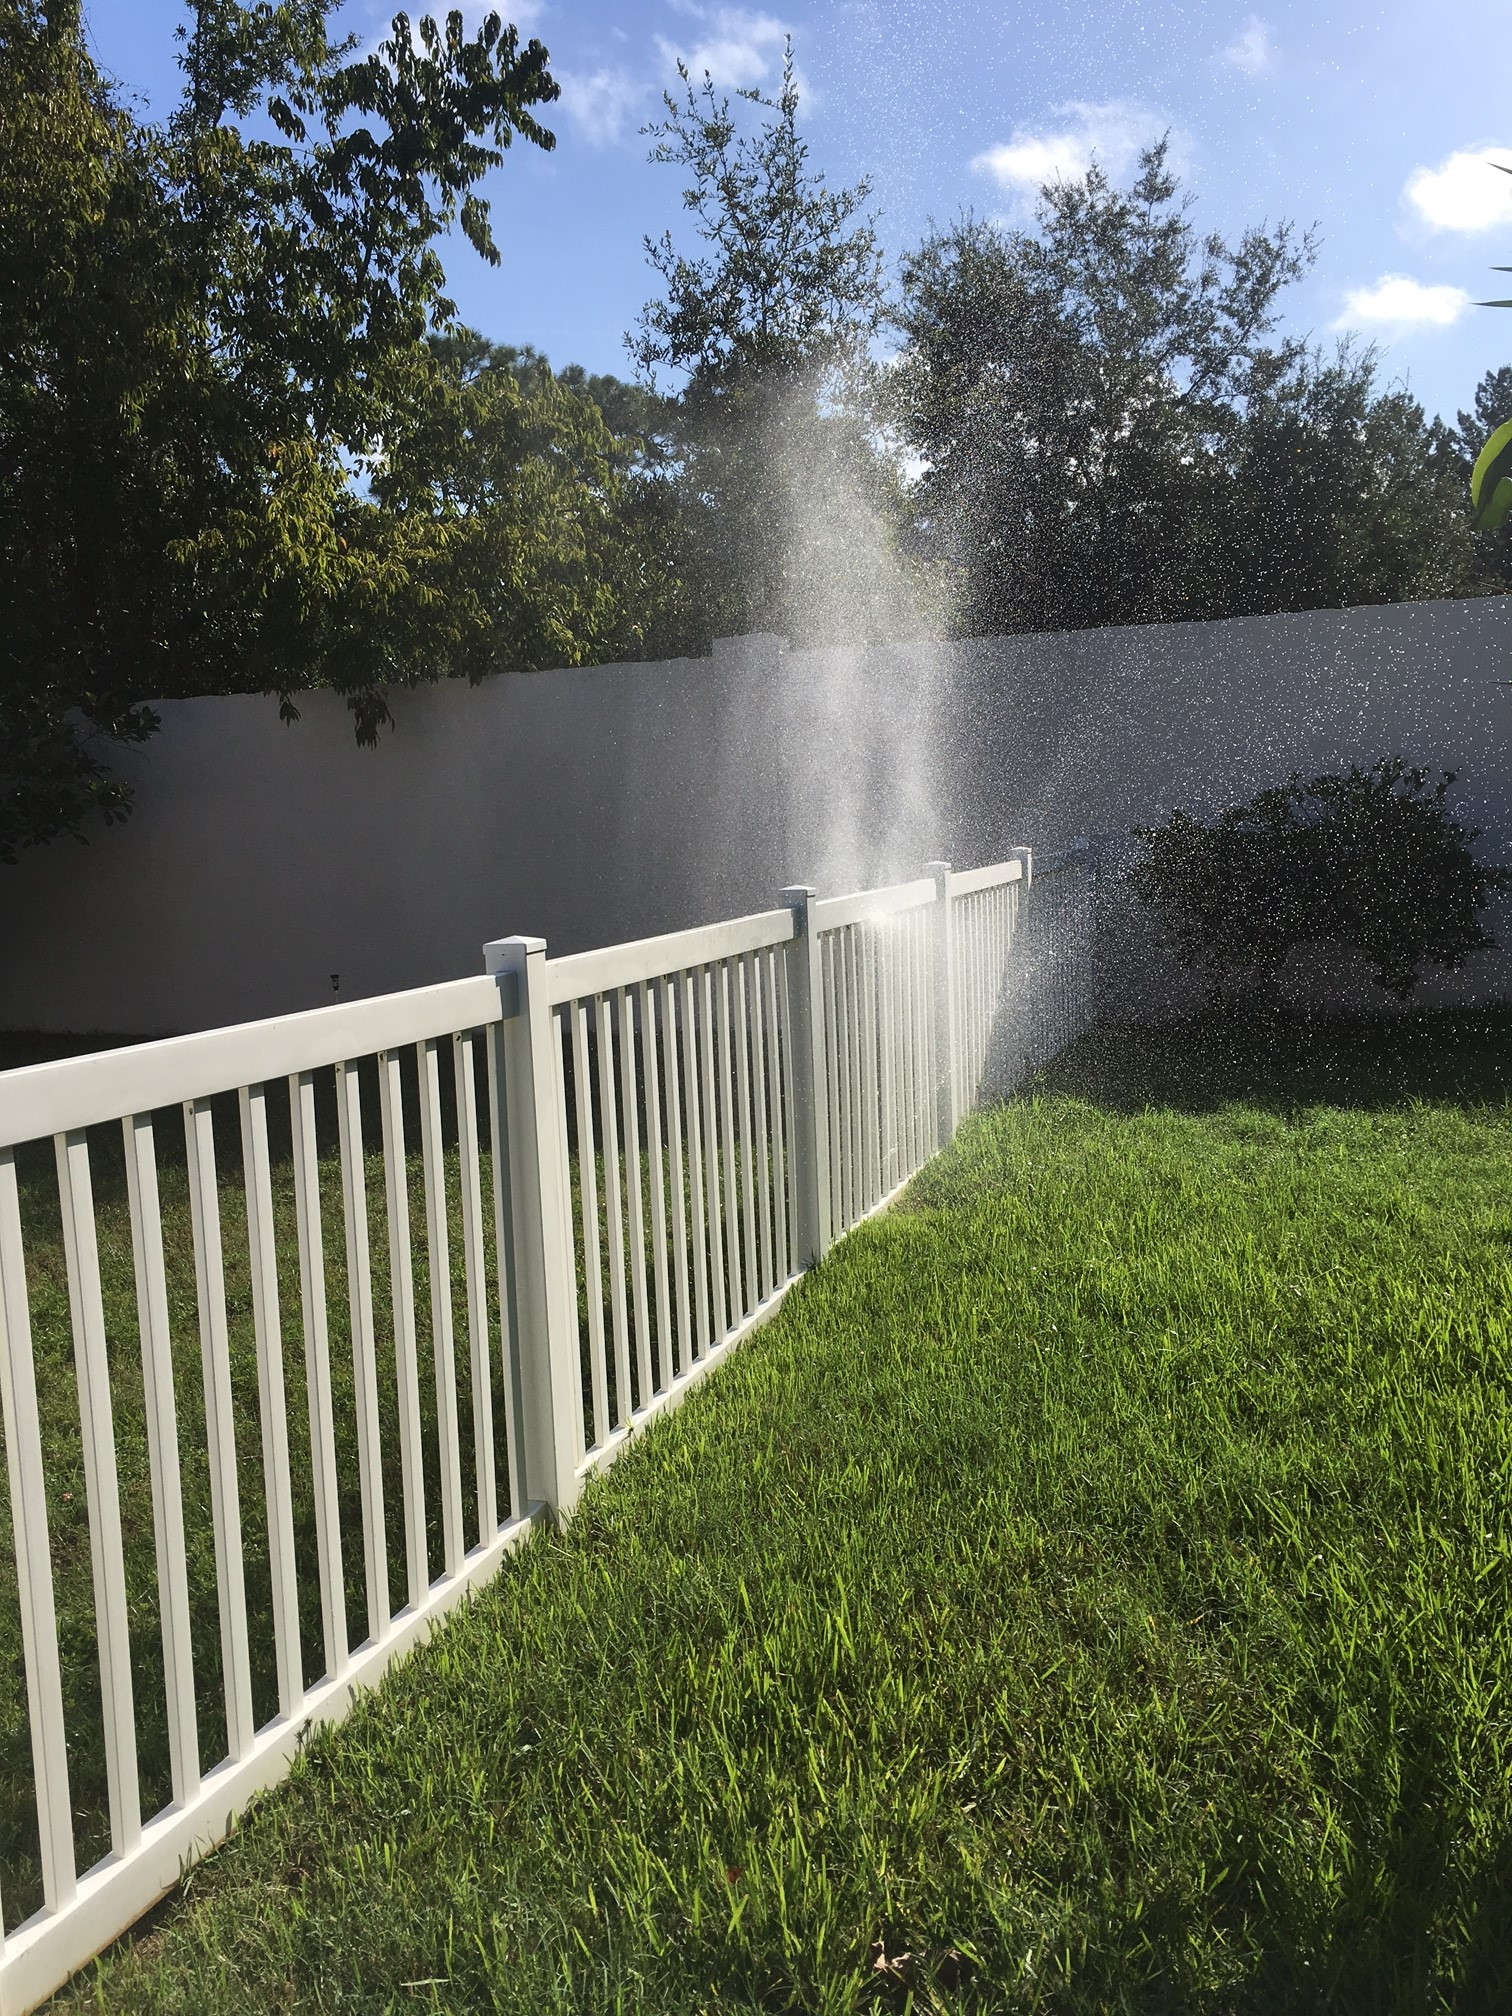 Broken Sprinkler